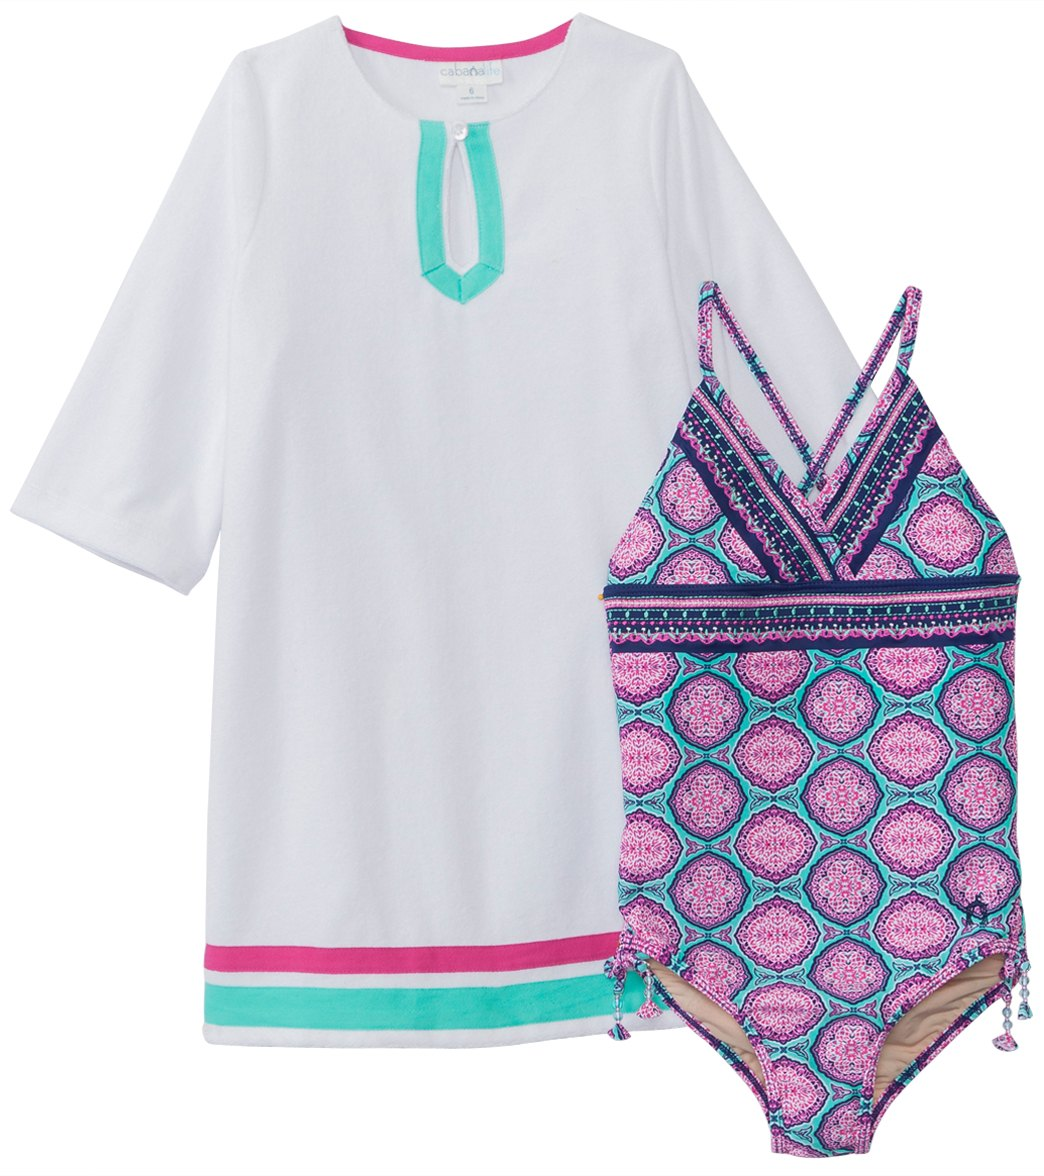 3c11c86595 Cabana Life Girls  Azalea Shores One Piece Swimsuit   Terry Cover Up  (2T-6X) at SwimOutlet.com - Free Shipping